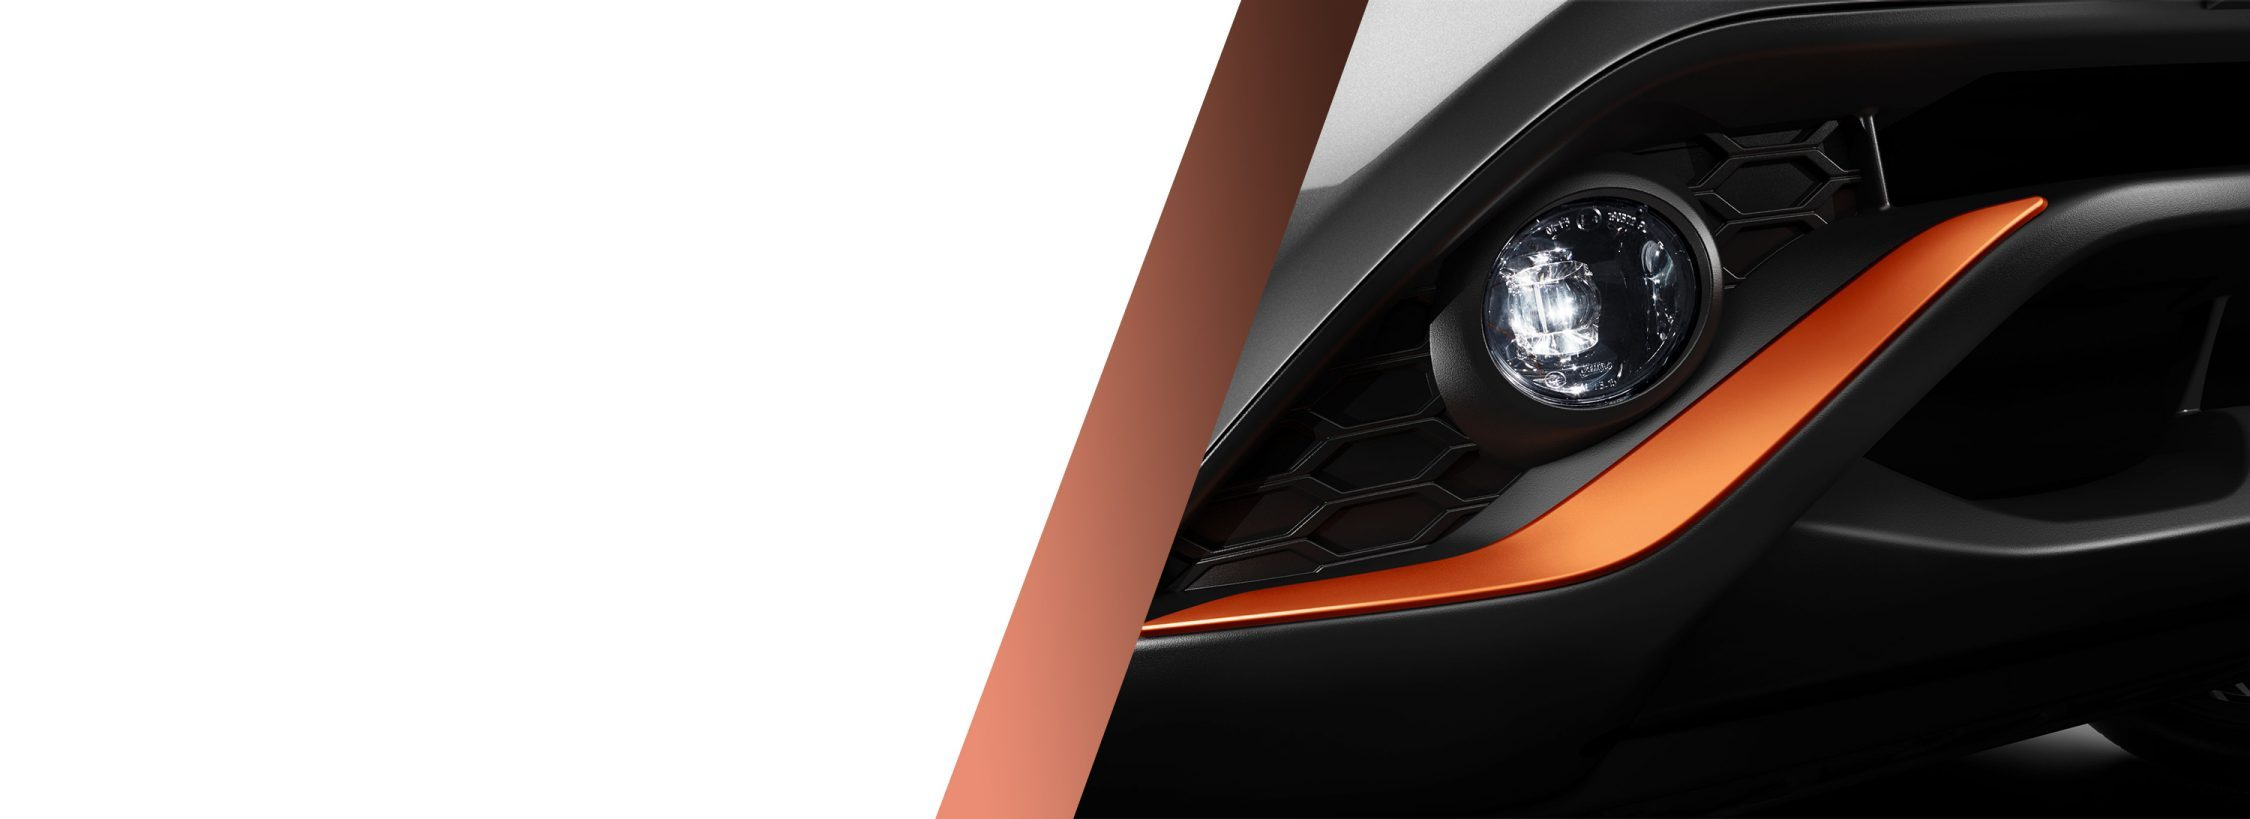 New Nissan Juke detail of the energy orange front bumper finisher